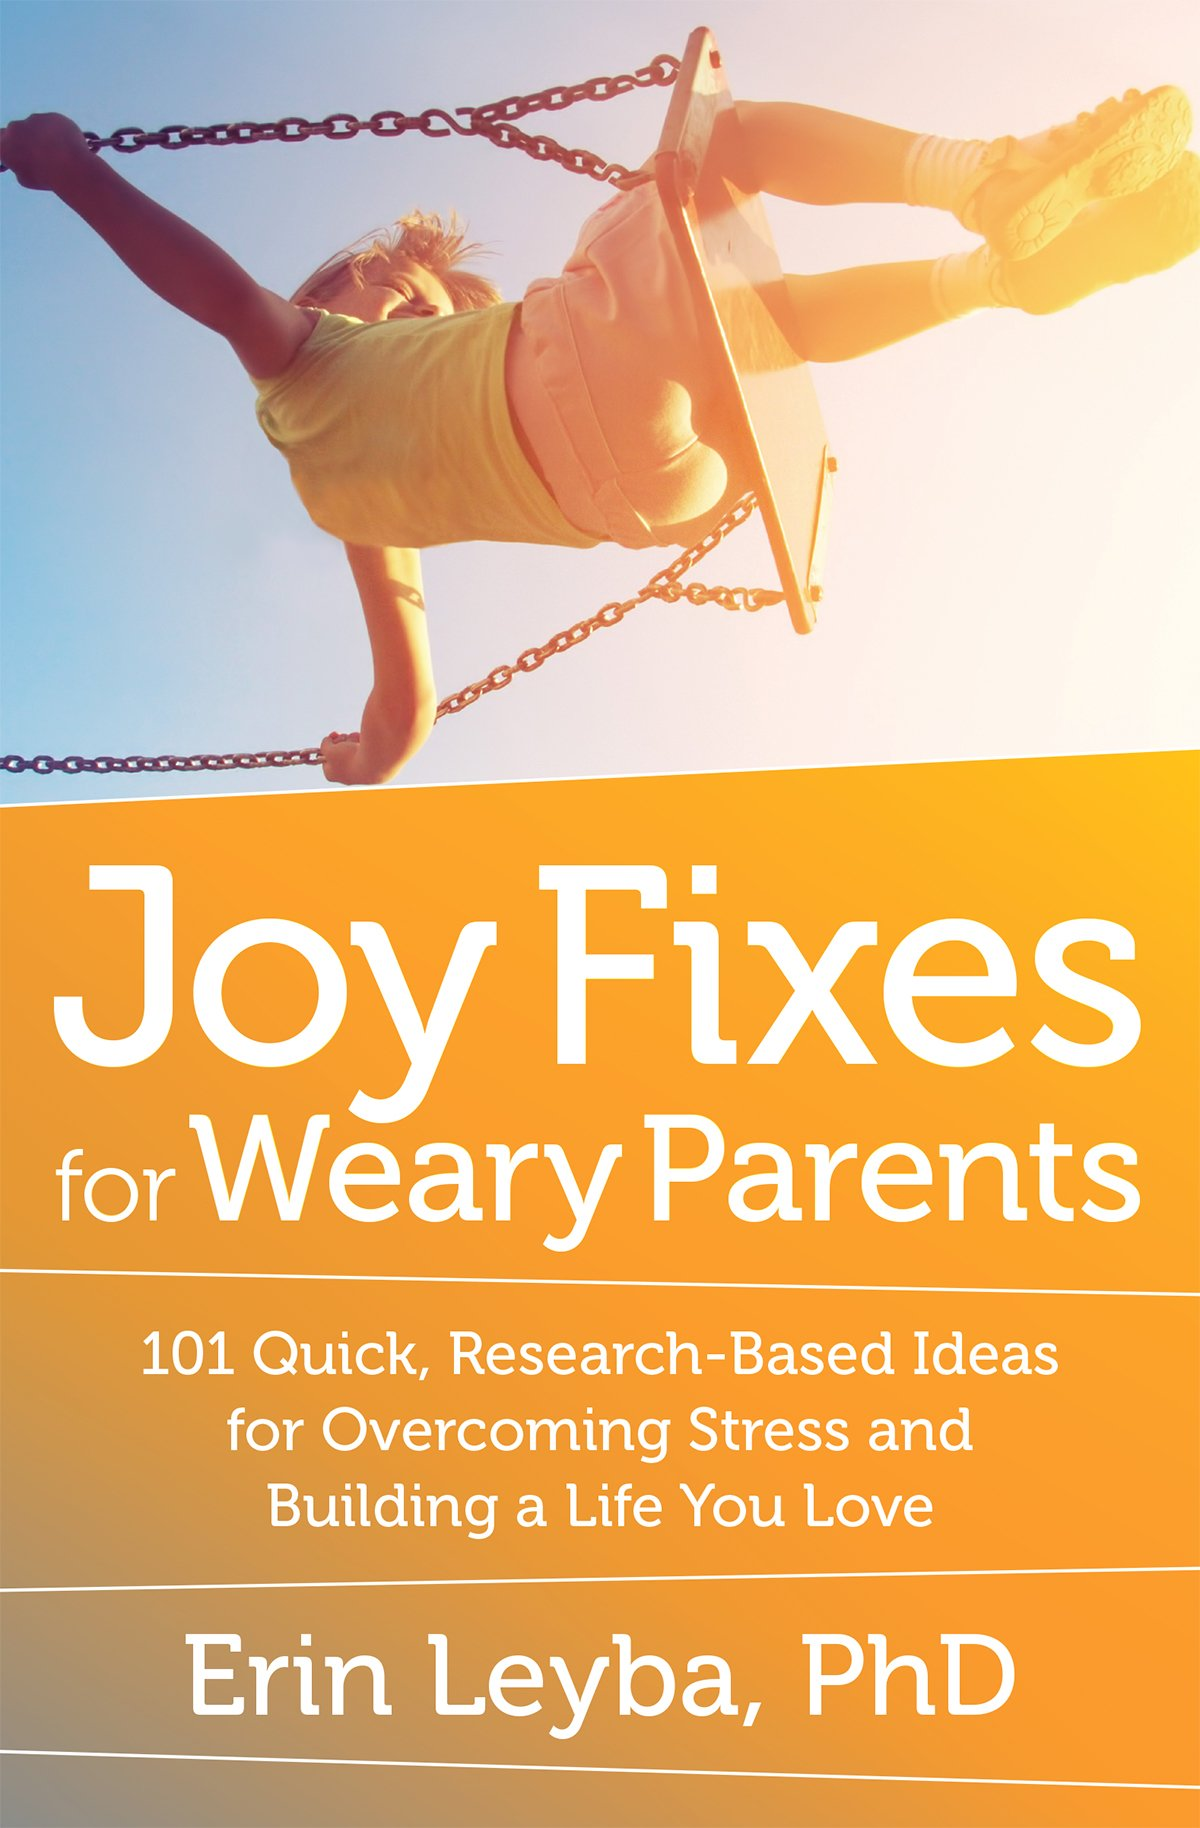 Joy Fixes For Weary Parents: 101 Quick, Researchbased Ideas For Overcoming  Stress And Building A Life You Love: Erin Leyba: 9781608684731: Amazon: